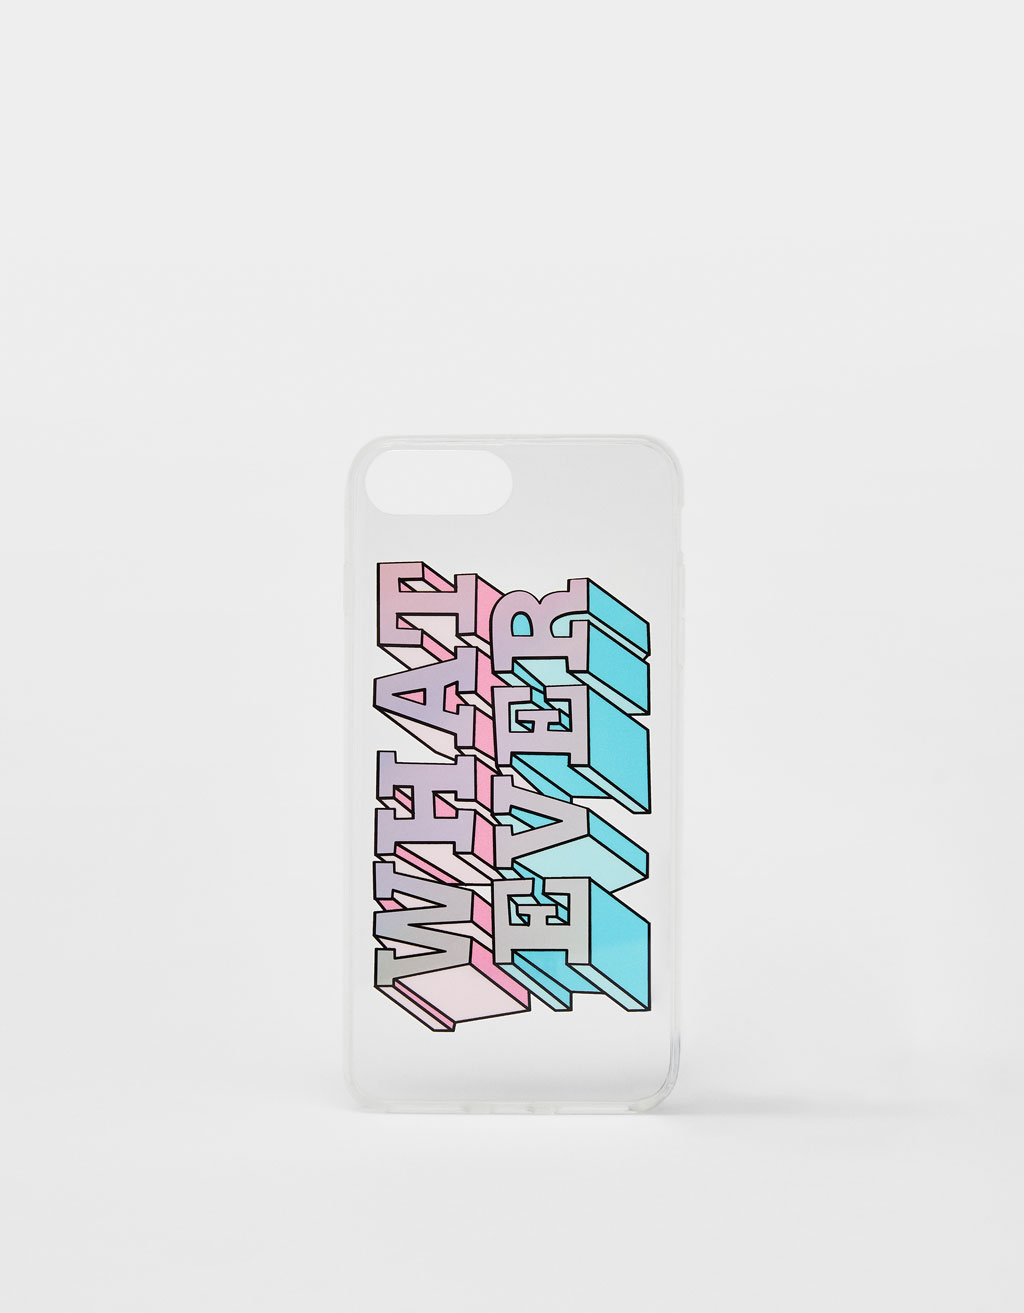 'Whatever' iPhone 6 Plus/7 Plus/8 Plus case